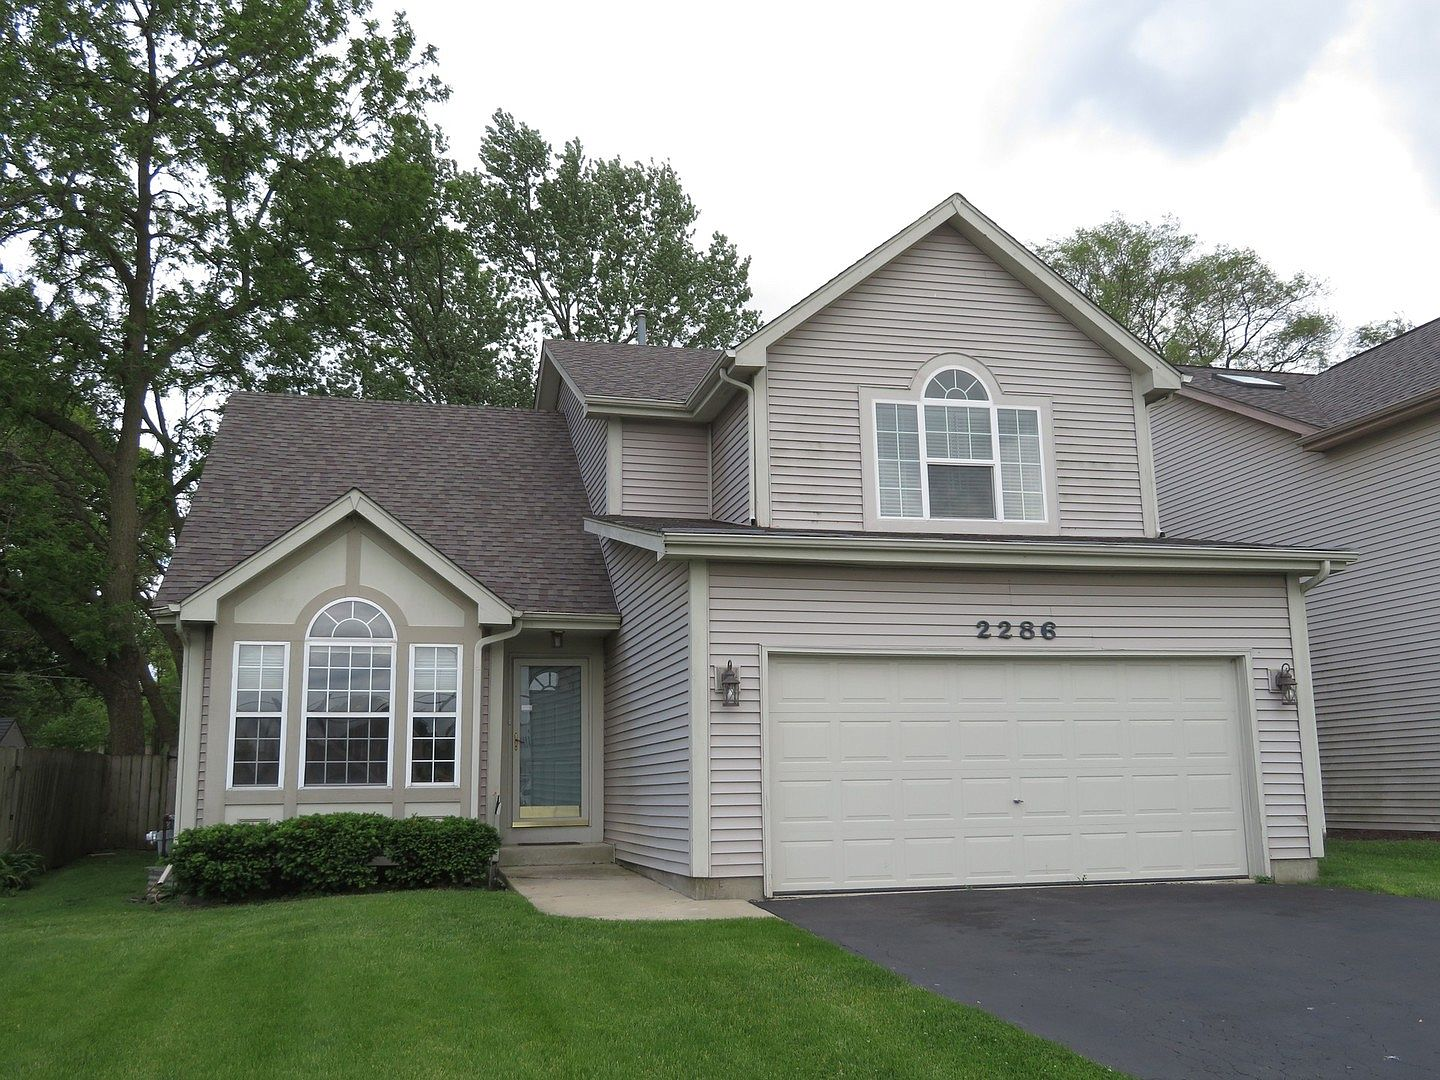 2286 Manchester Rd Wheaton Il 60187 Mls 10681582 Zillow